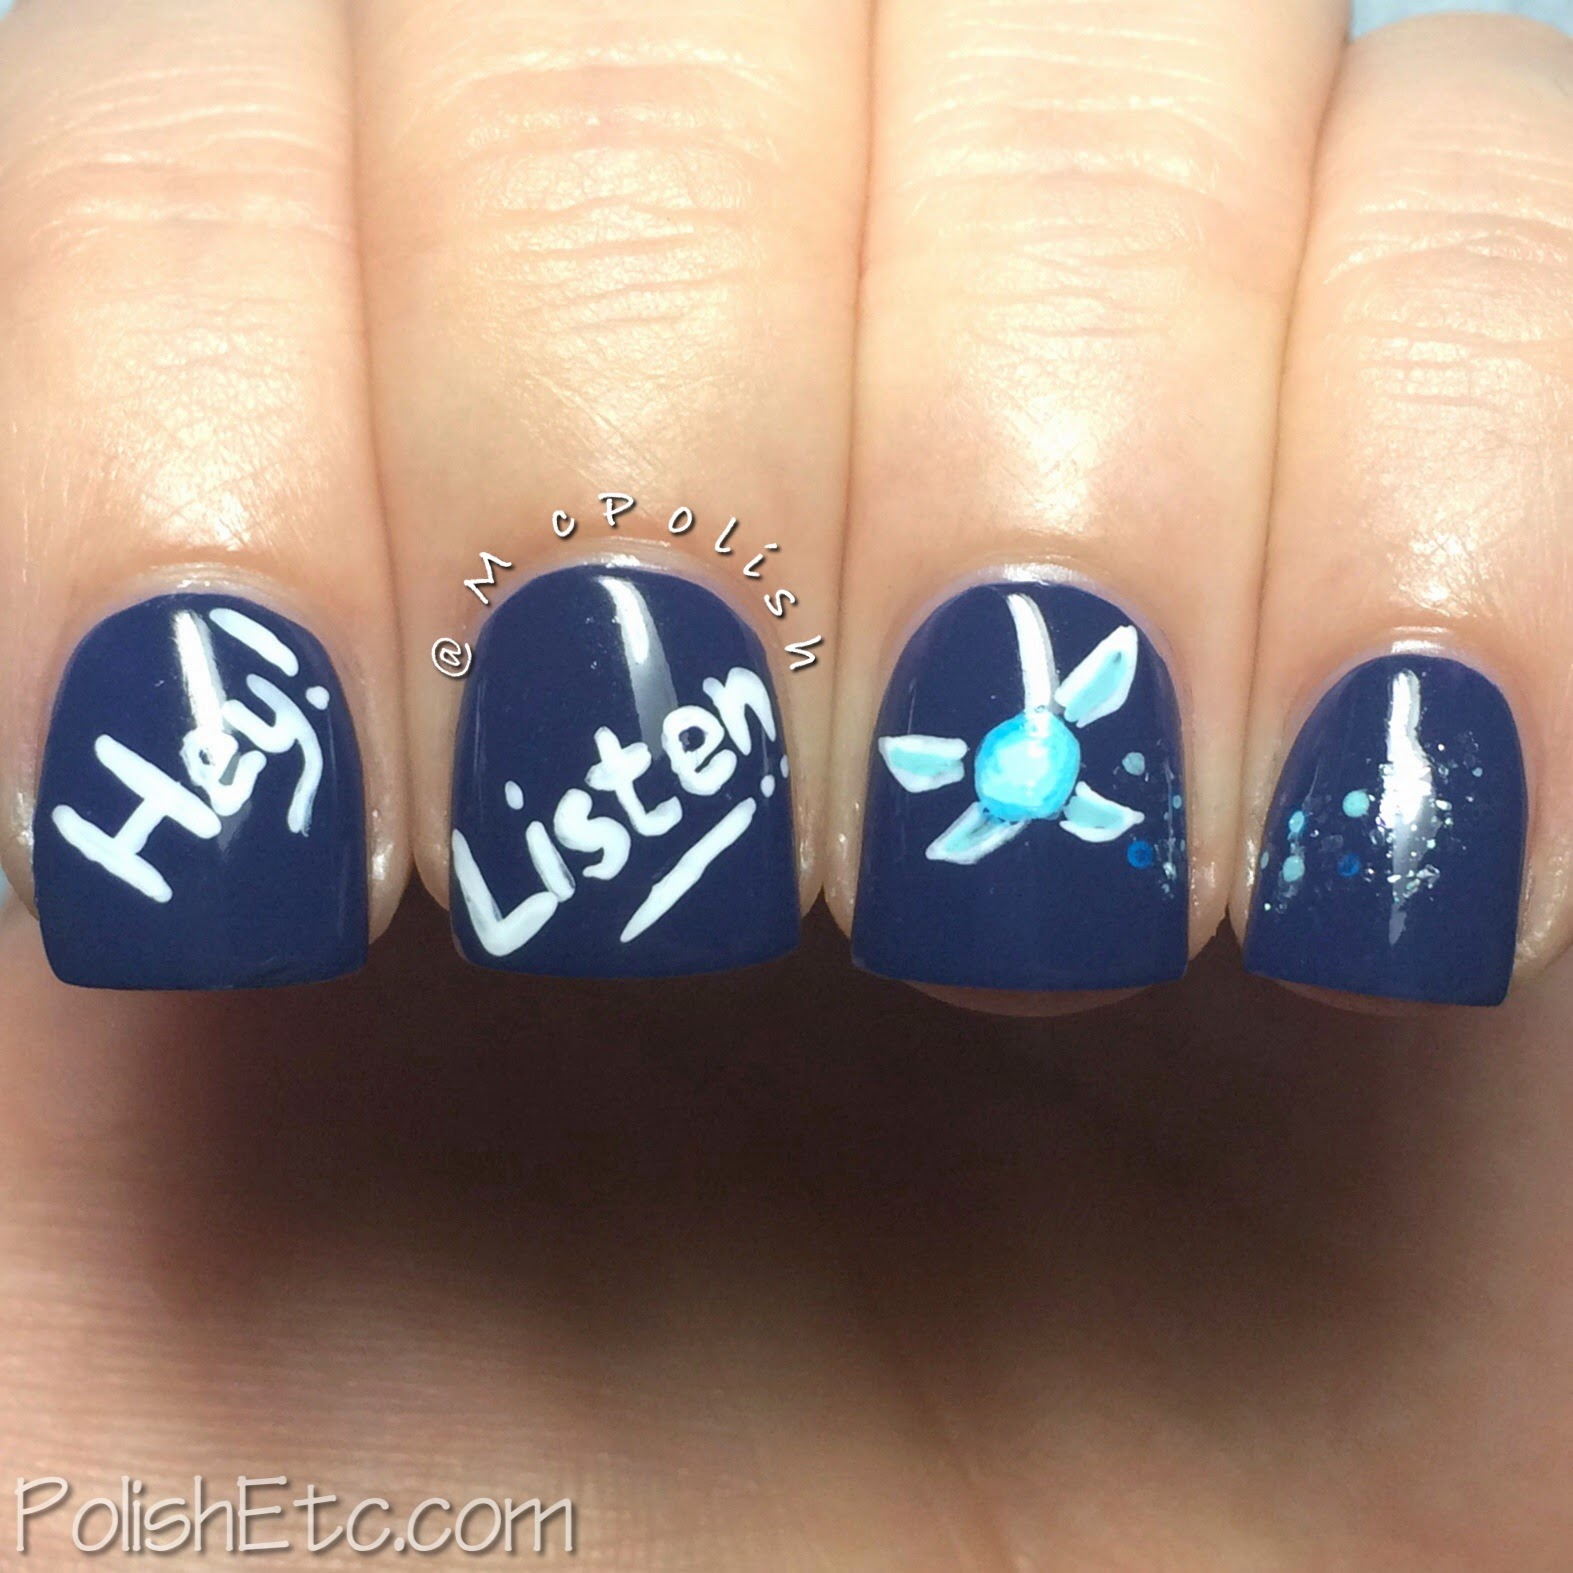 31 Day Nail Art Challenge -#31dc2014 - McPolish - SUPERNATURAL